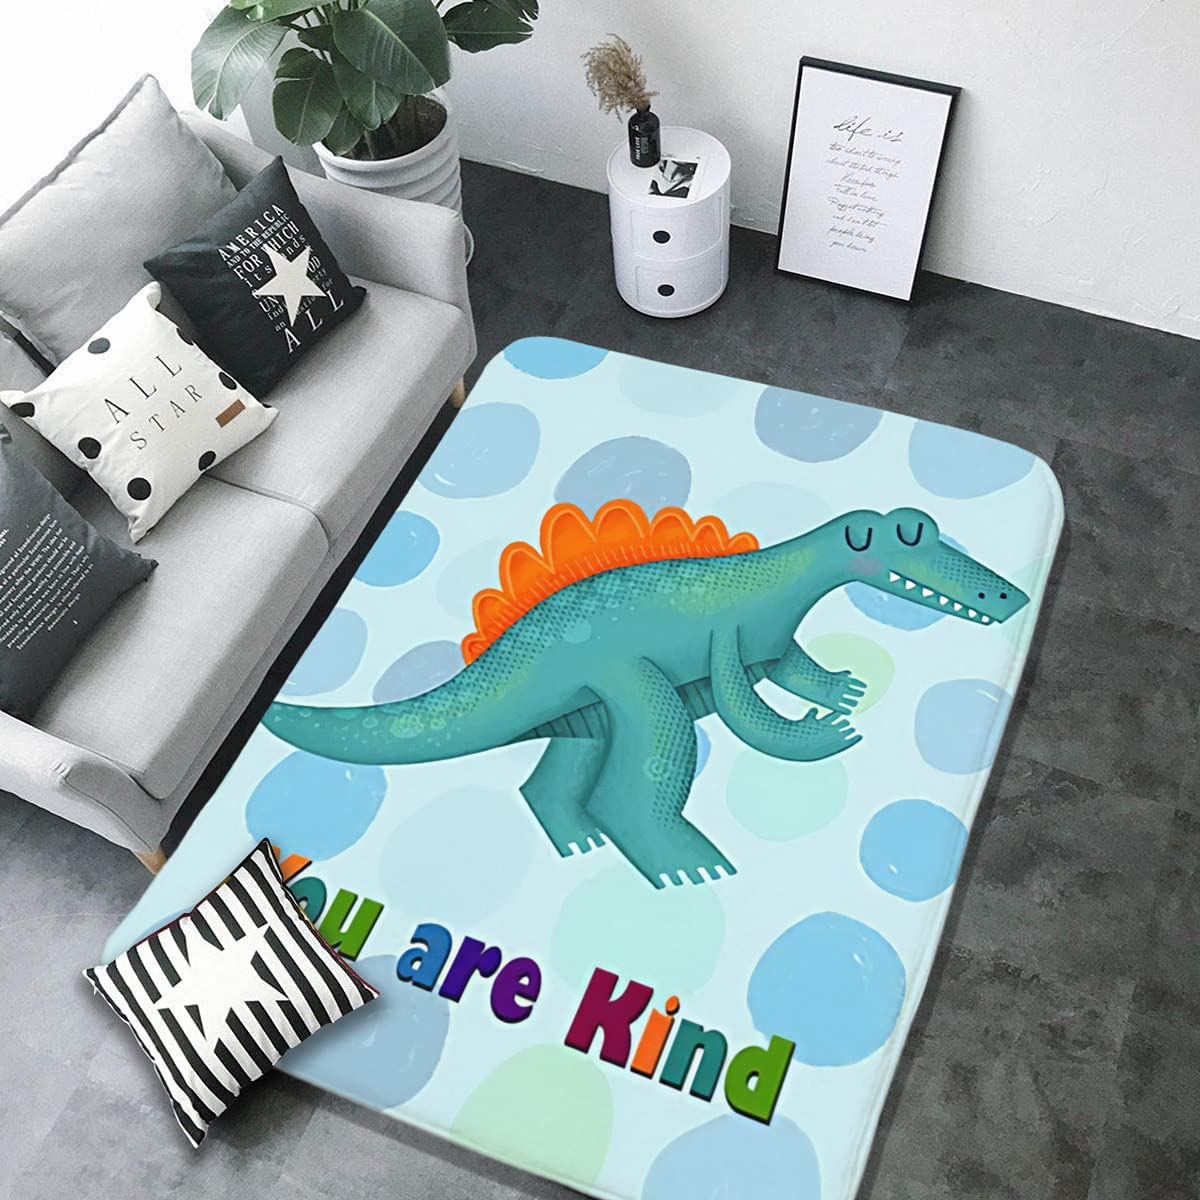 You are Kind Dinosaur Safety and trust Funny Carpet Bedroom Area Camping Soft Manufacturer direct delivery Mat